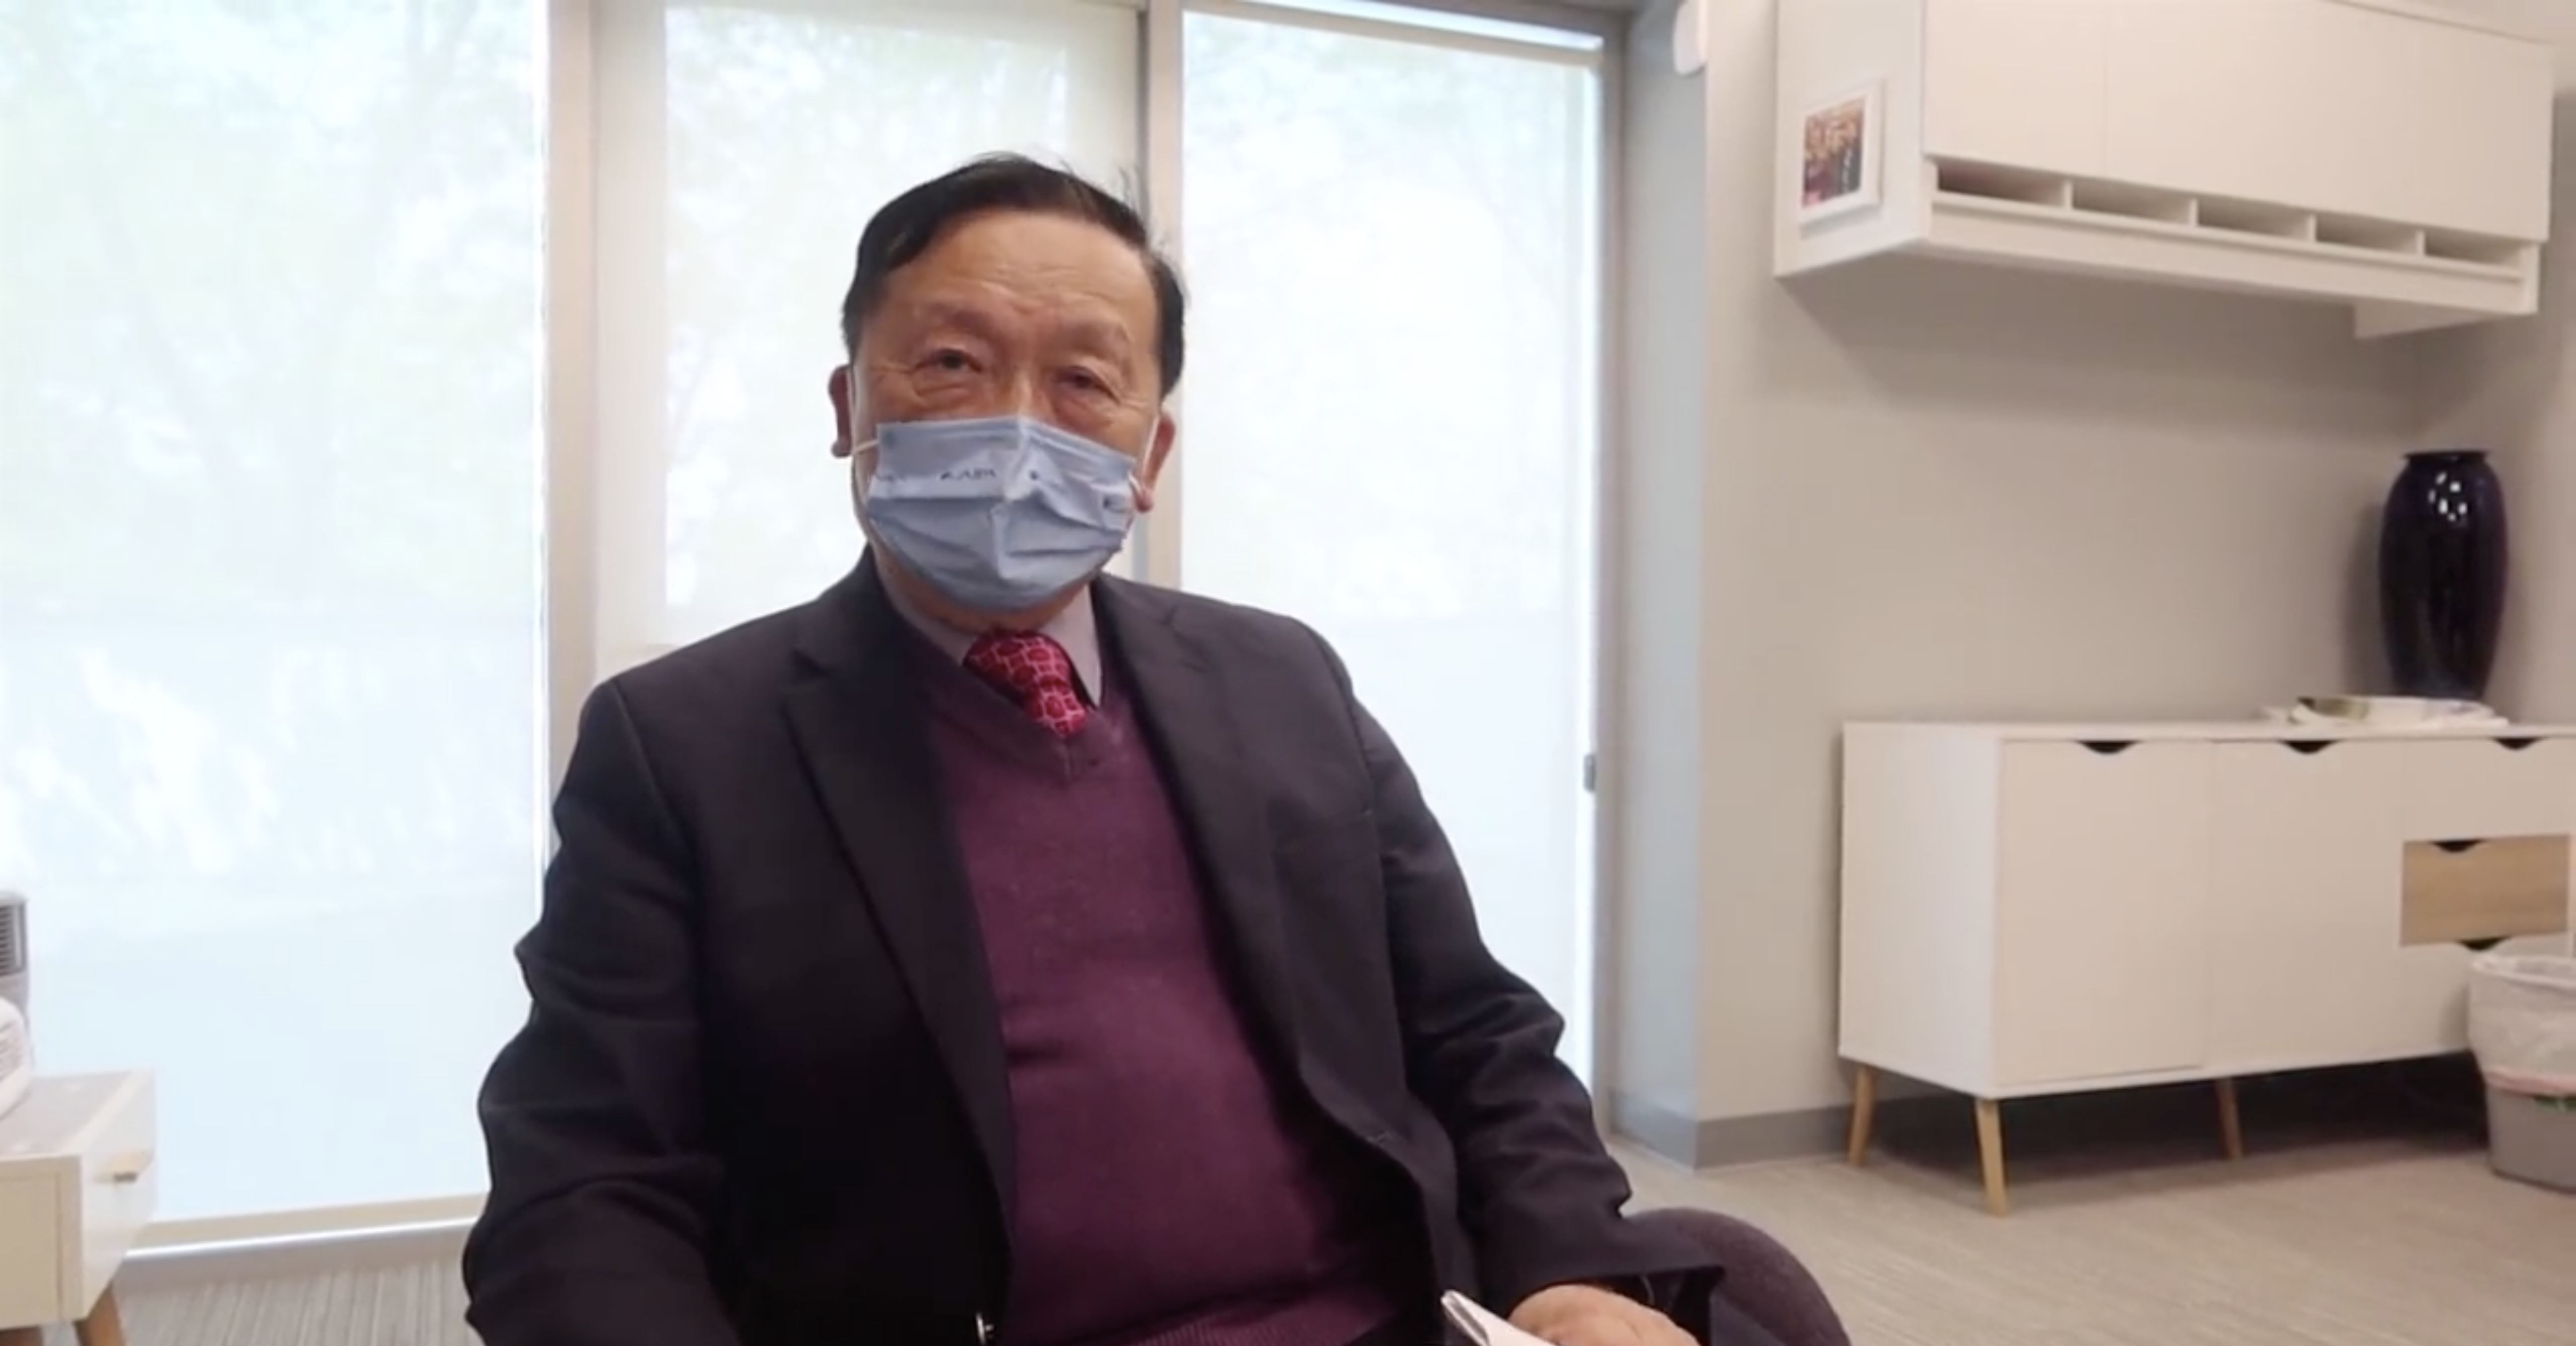 Dr. George Liu Interviewed - Covid19 Positivity Rate Increased